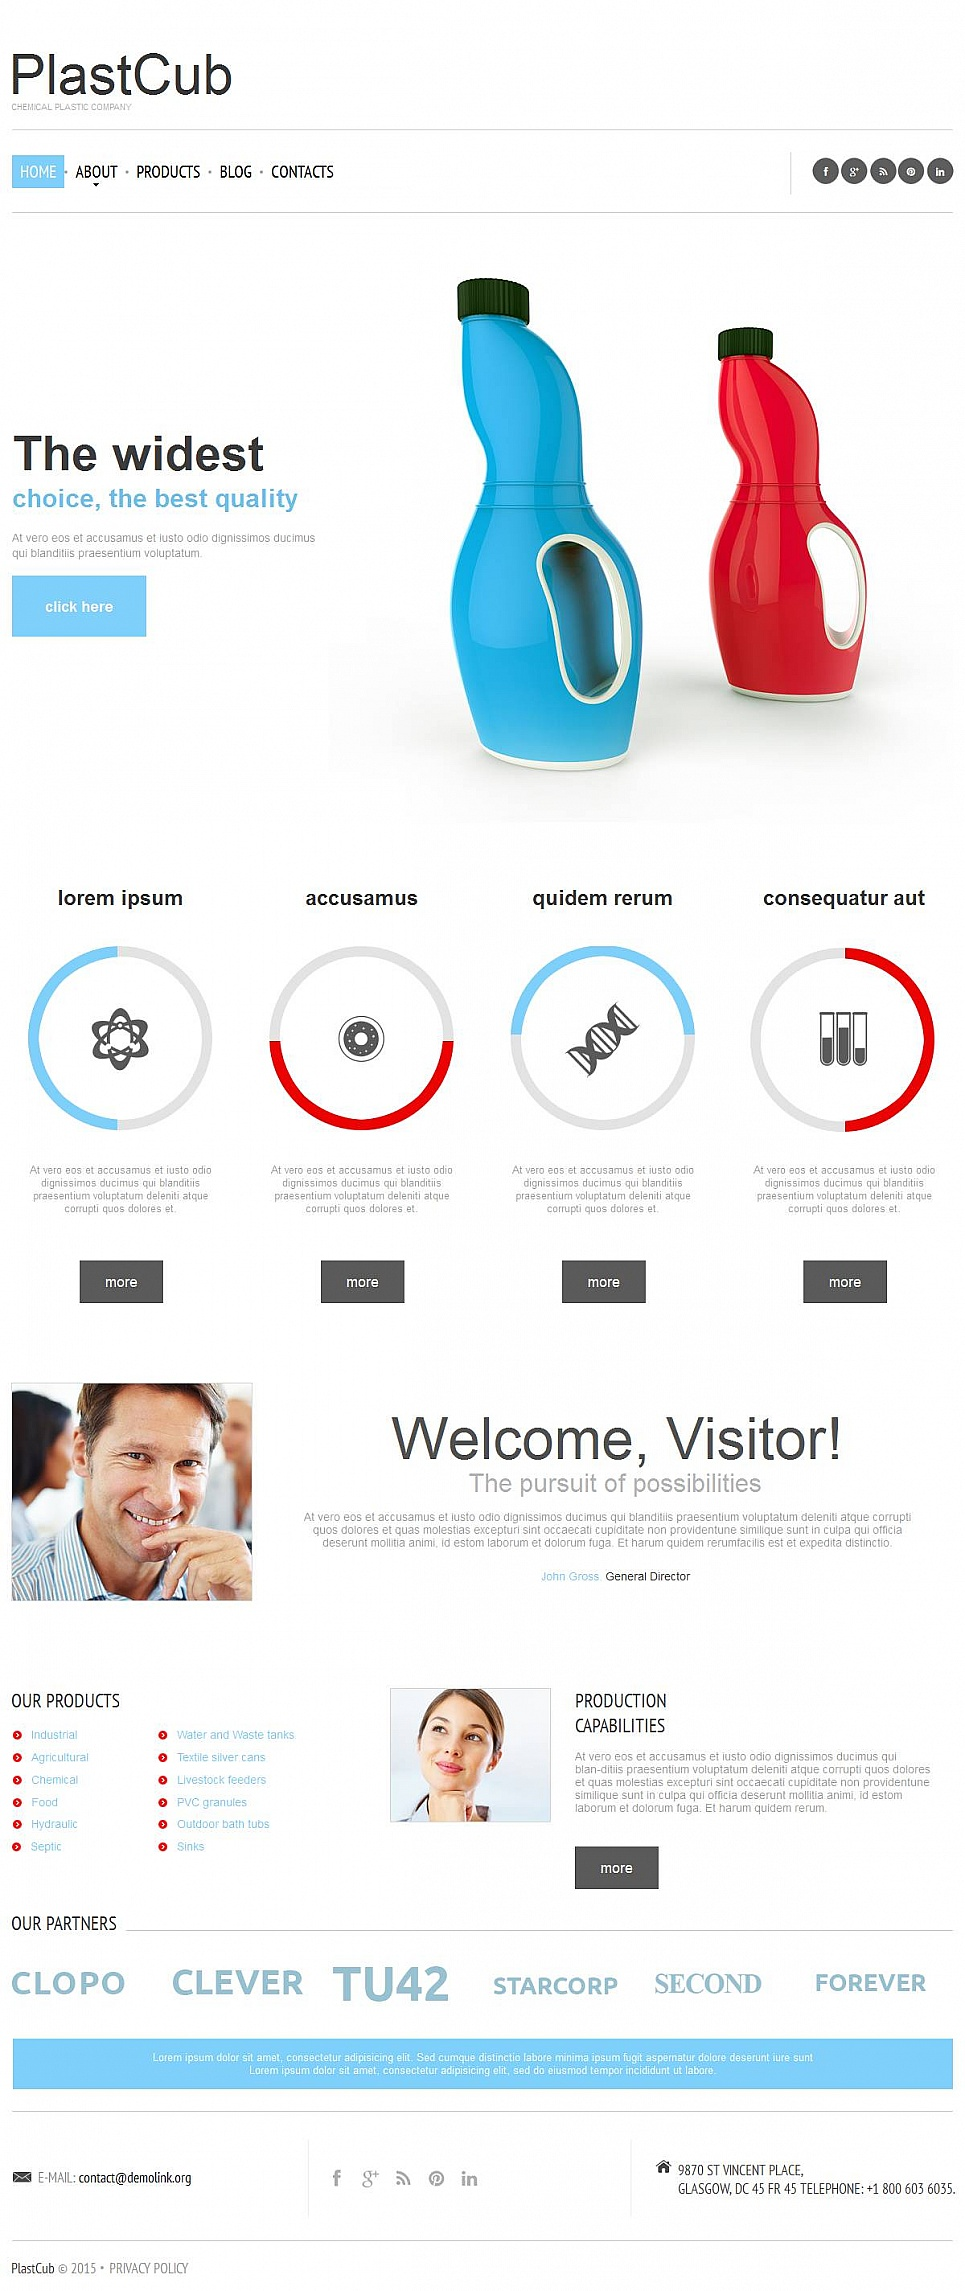 Chemical Company Website Template - image